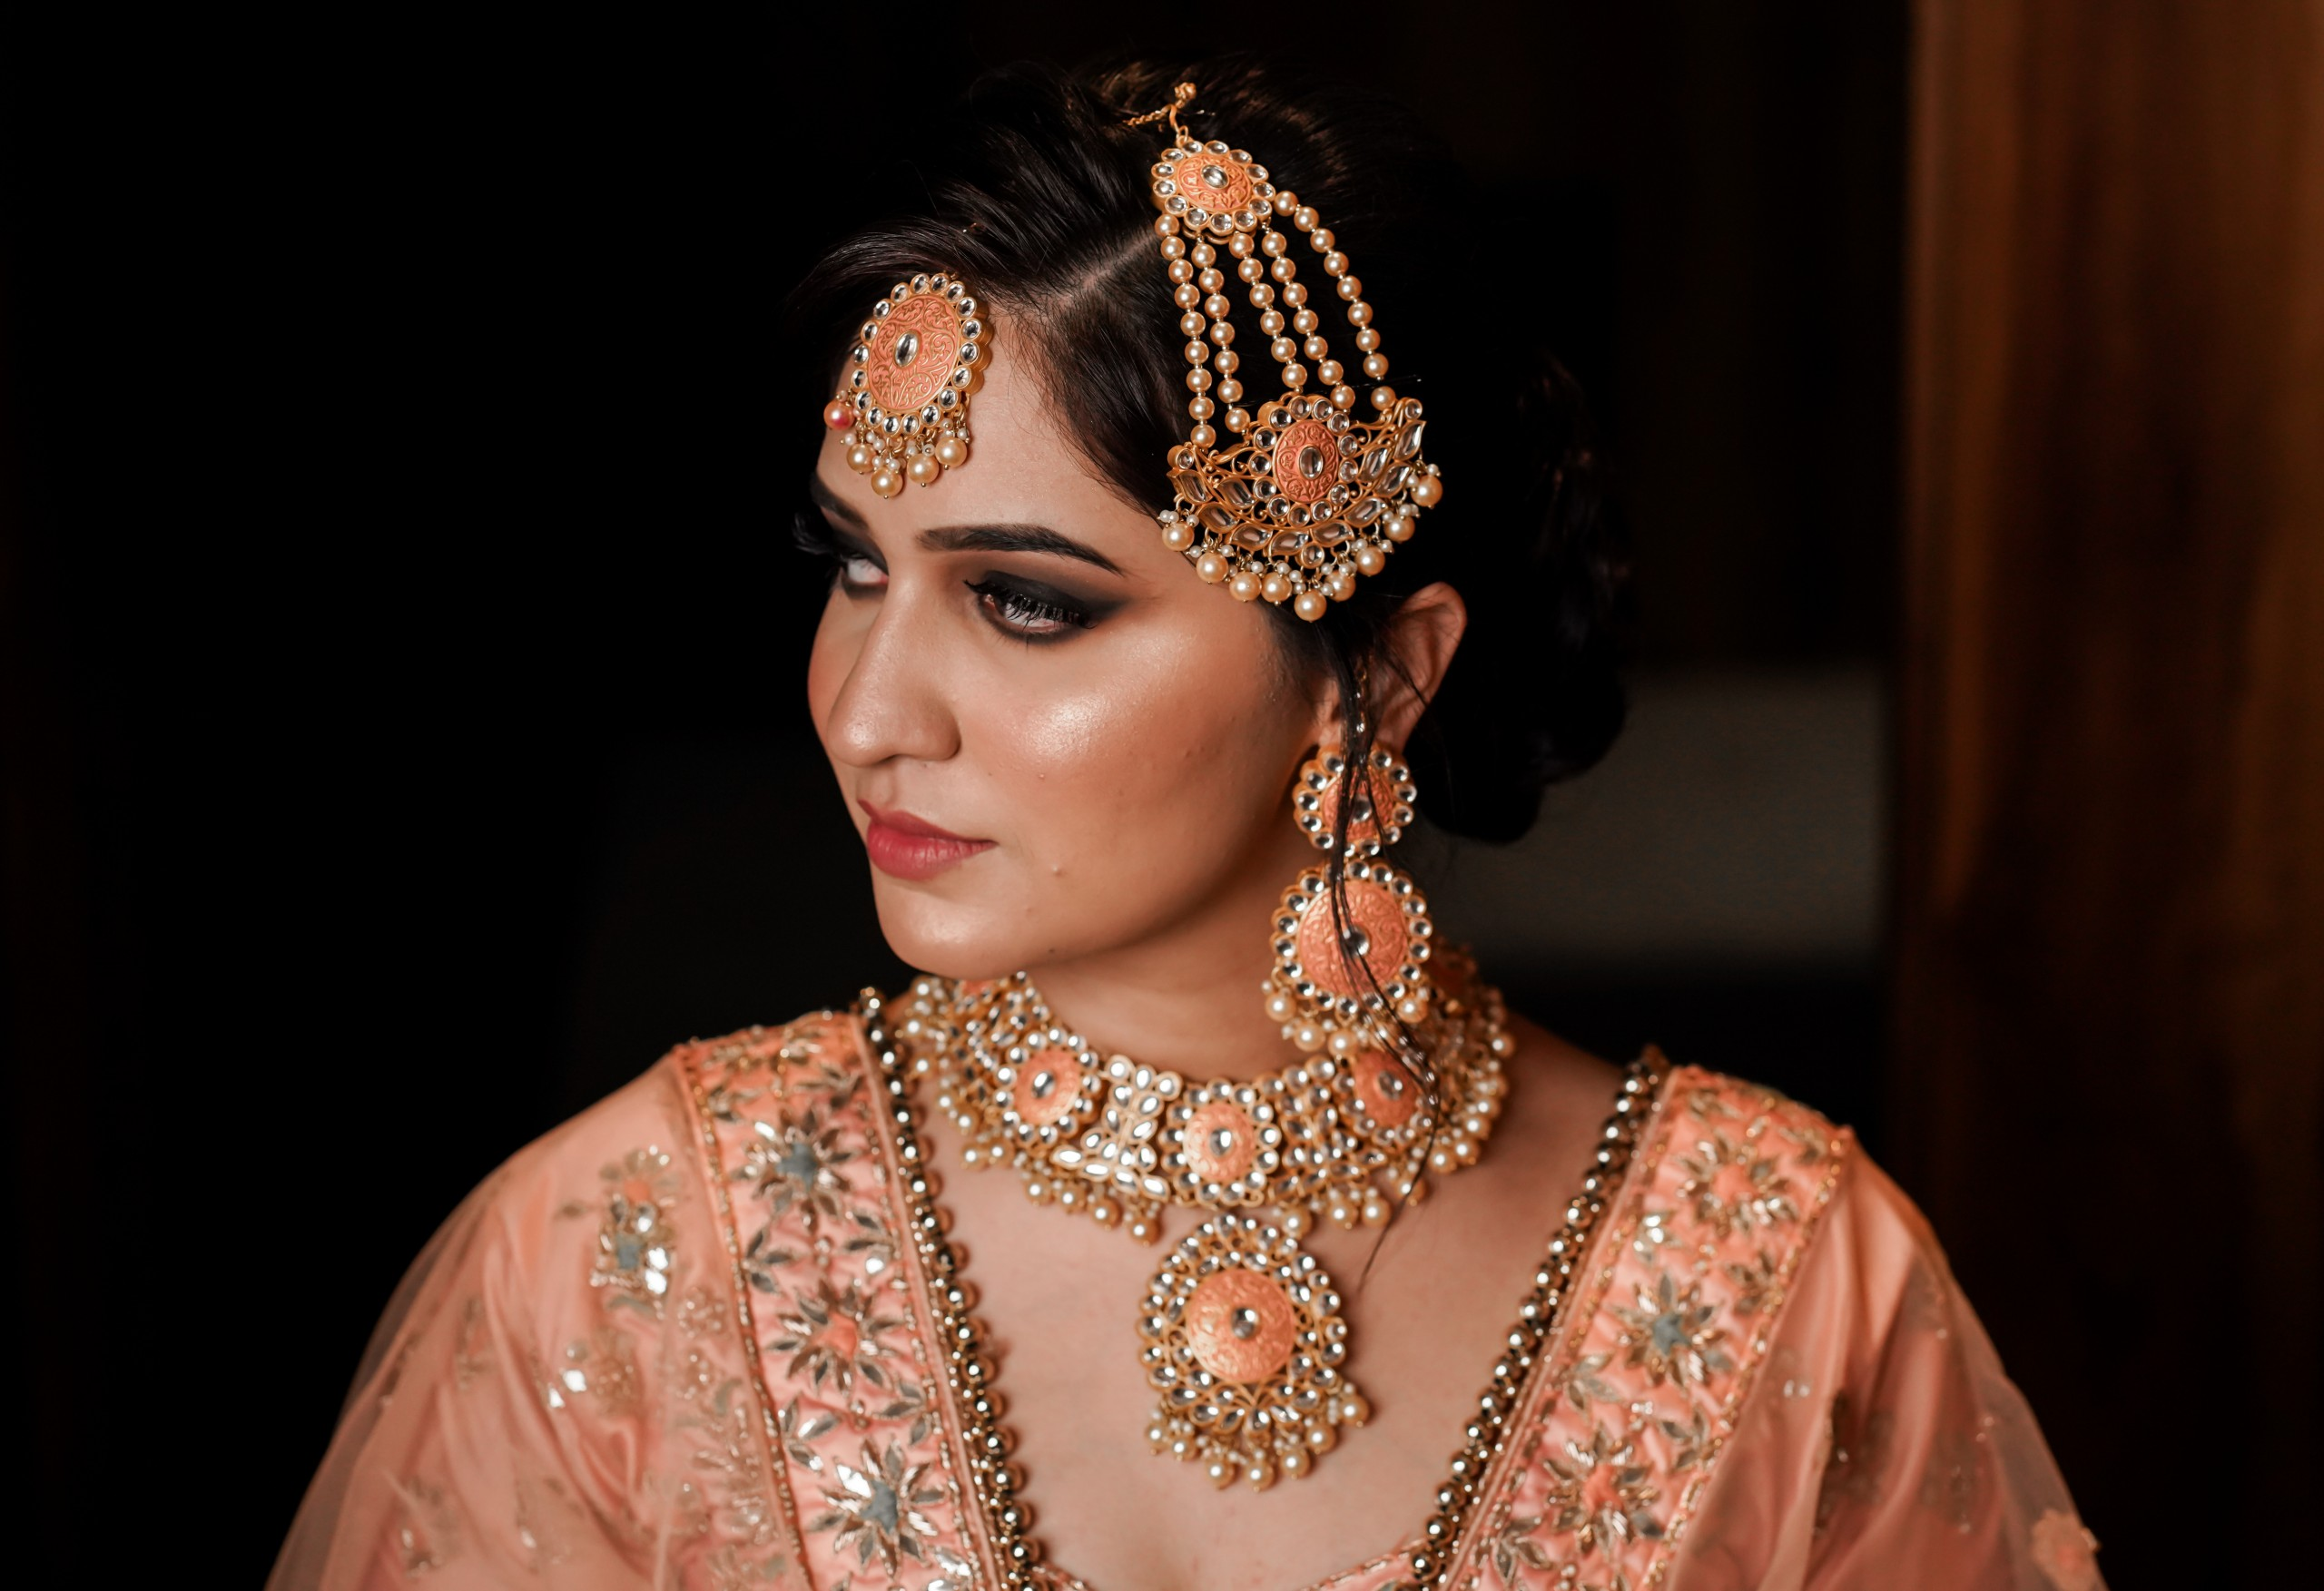 Image of a gorgeous Indian bride traditionally dressed